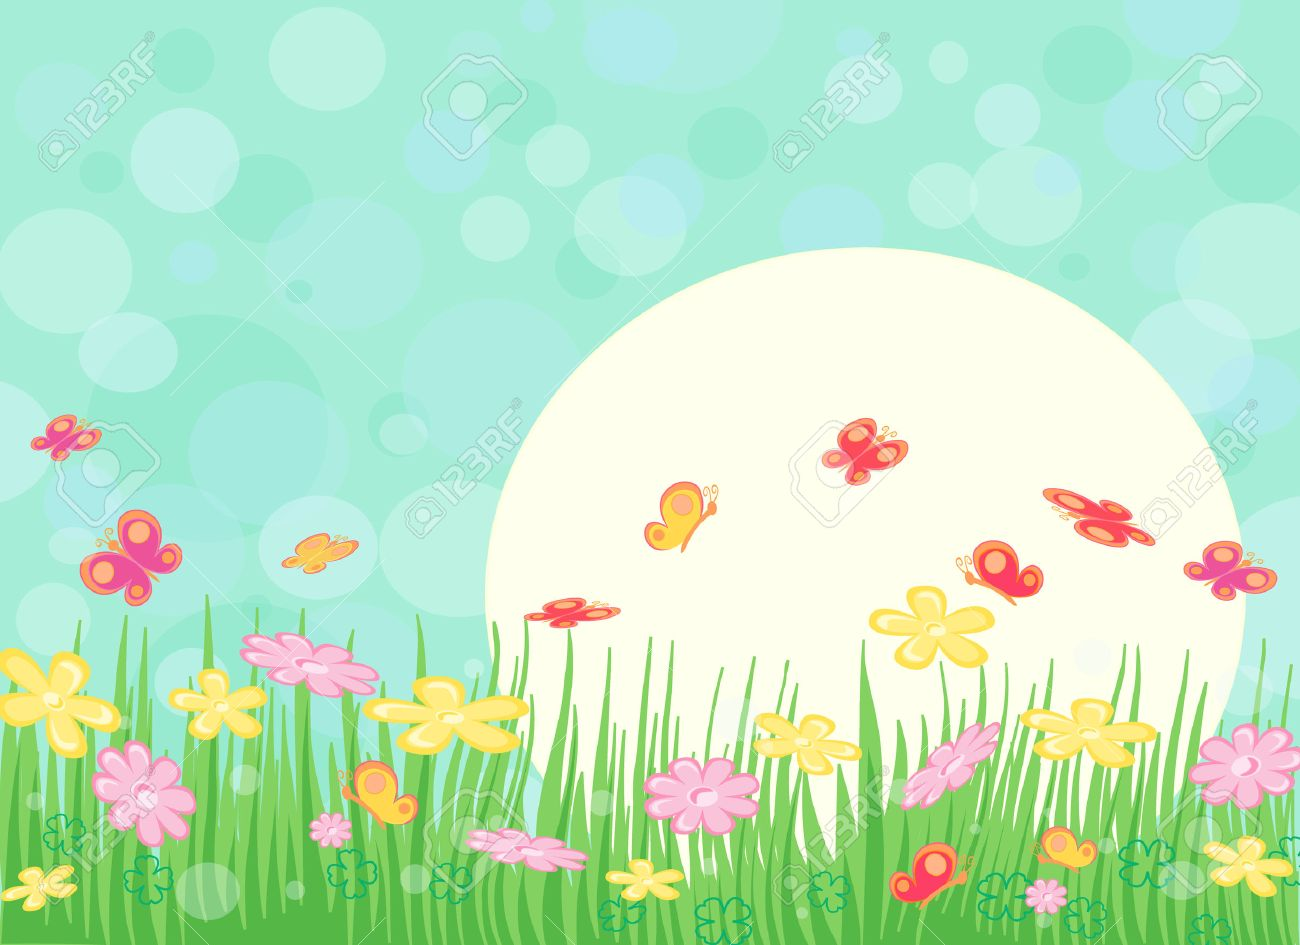 Flower garden cartoon - Spring Sunny Landscape With Flowers And Butterfly Stock Vector 6450544